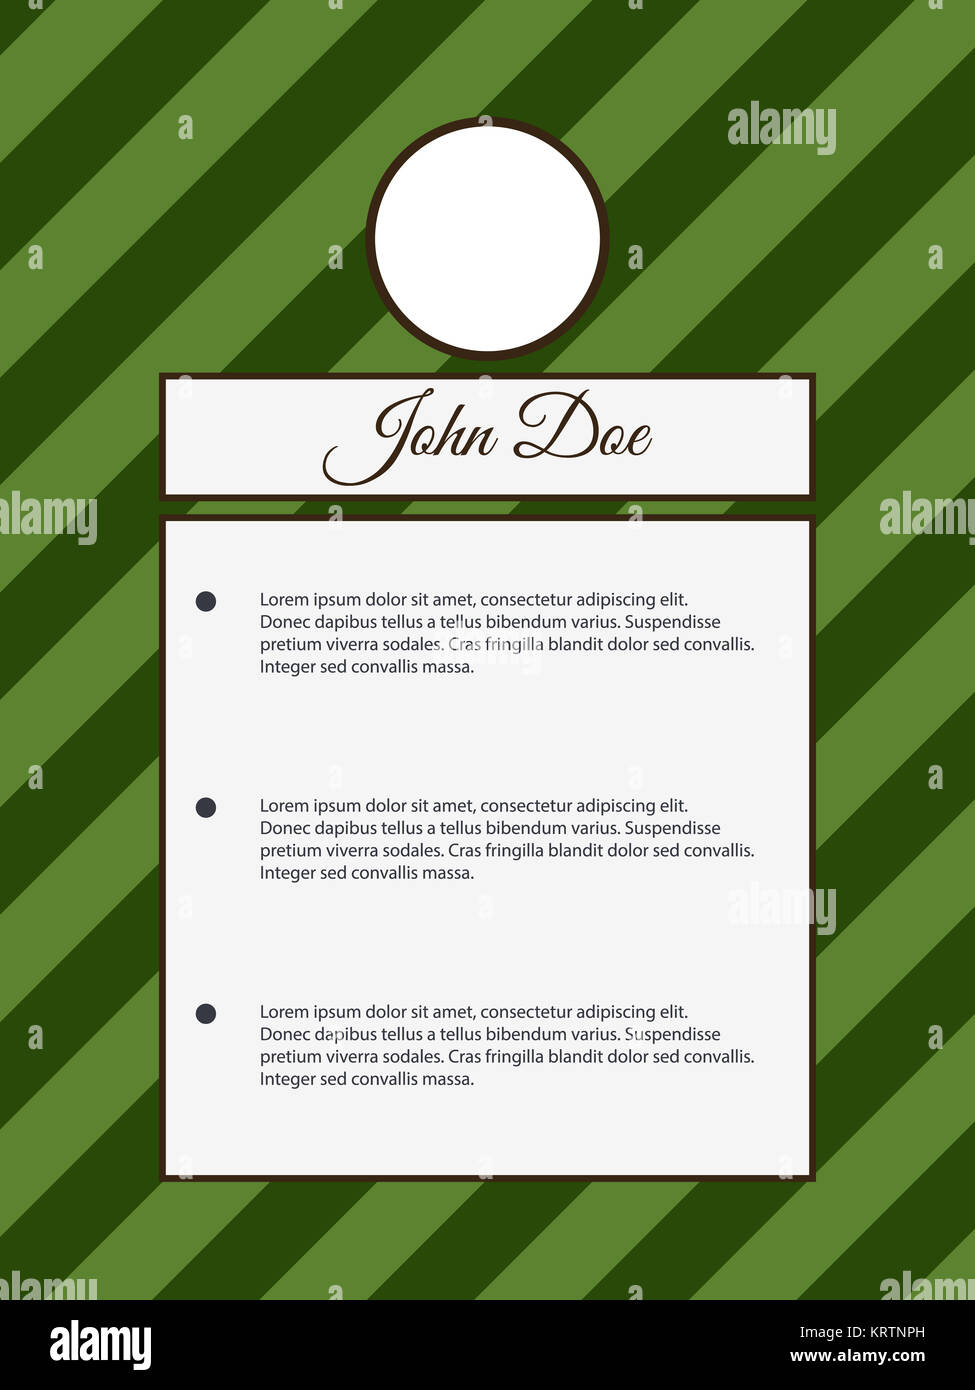 Resume Template Stock Photos  Resume Template Stock Images  Alamy